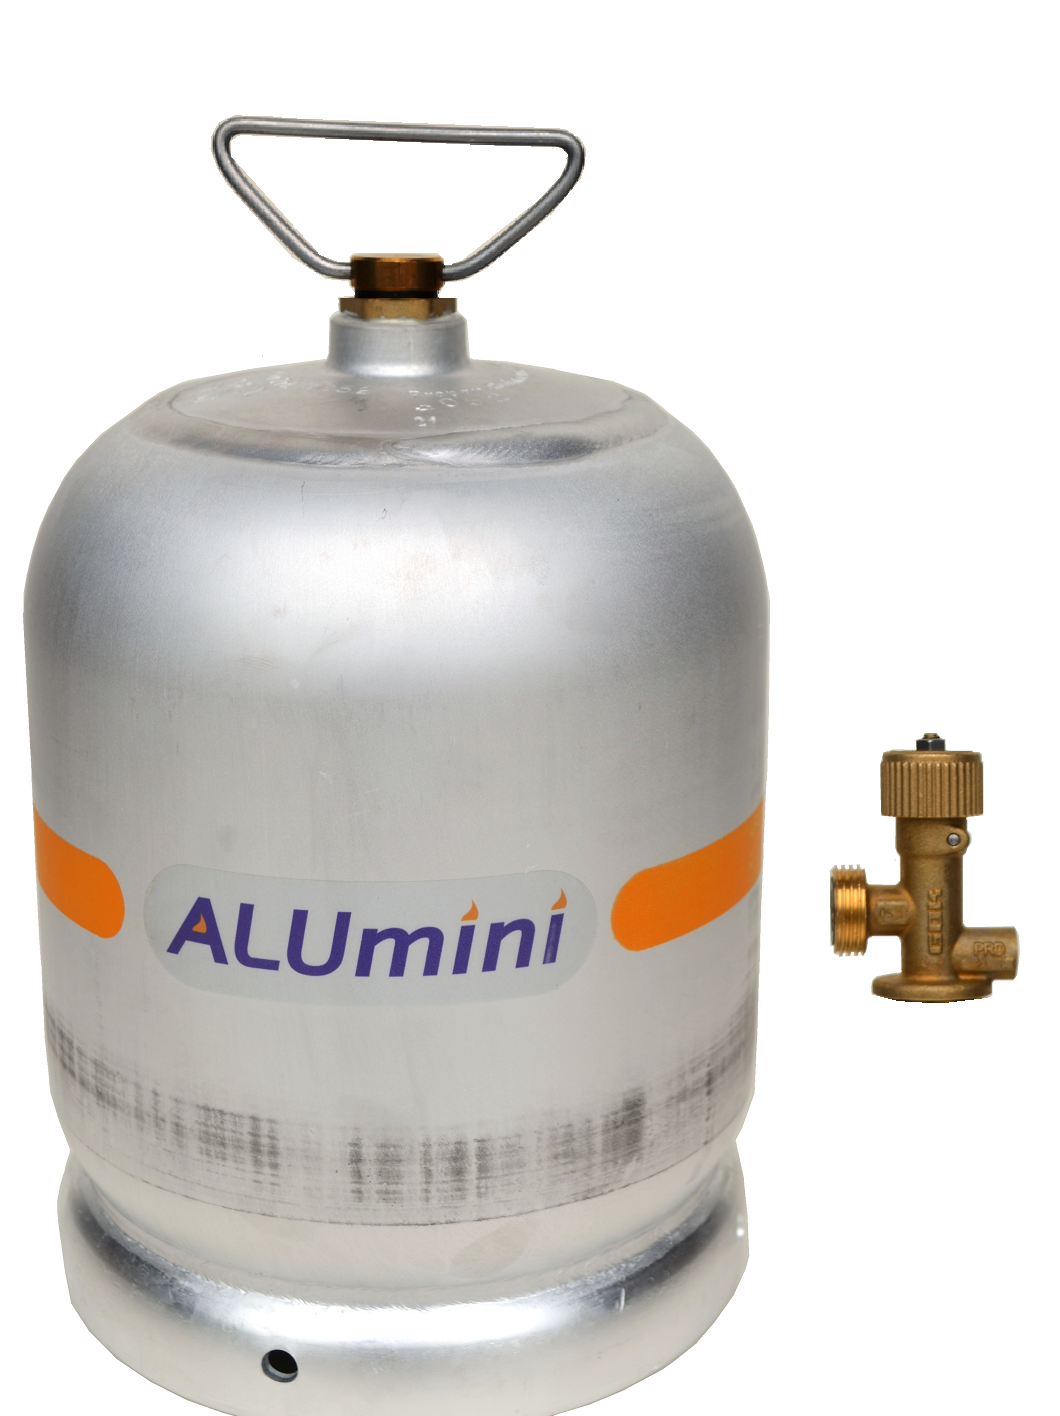 alumini gasflasche 2 kg leer alugas heizen grillen camping. Black Bedroom Furniture Sets. Home Design Ideas